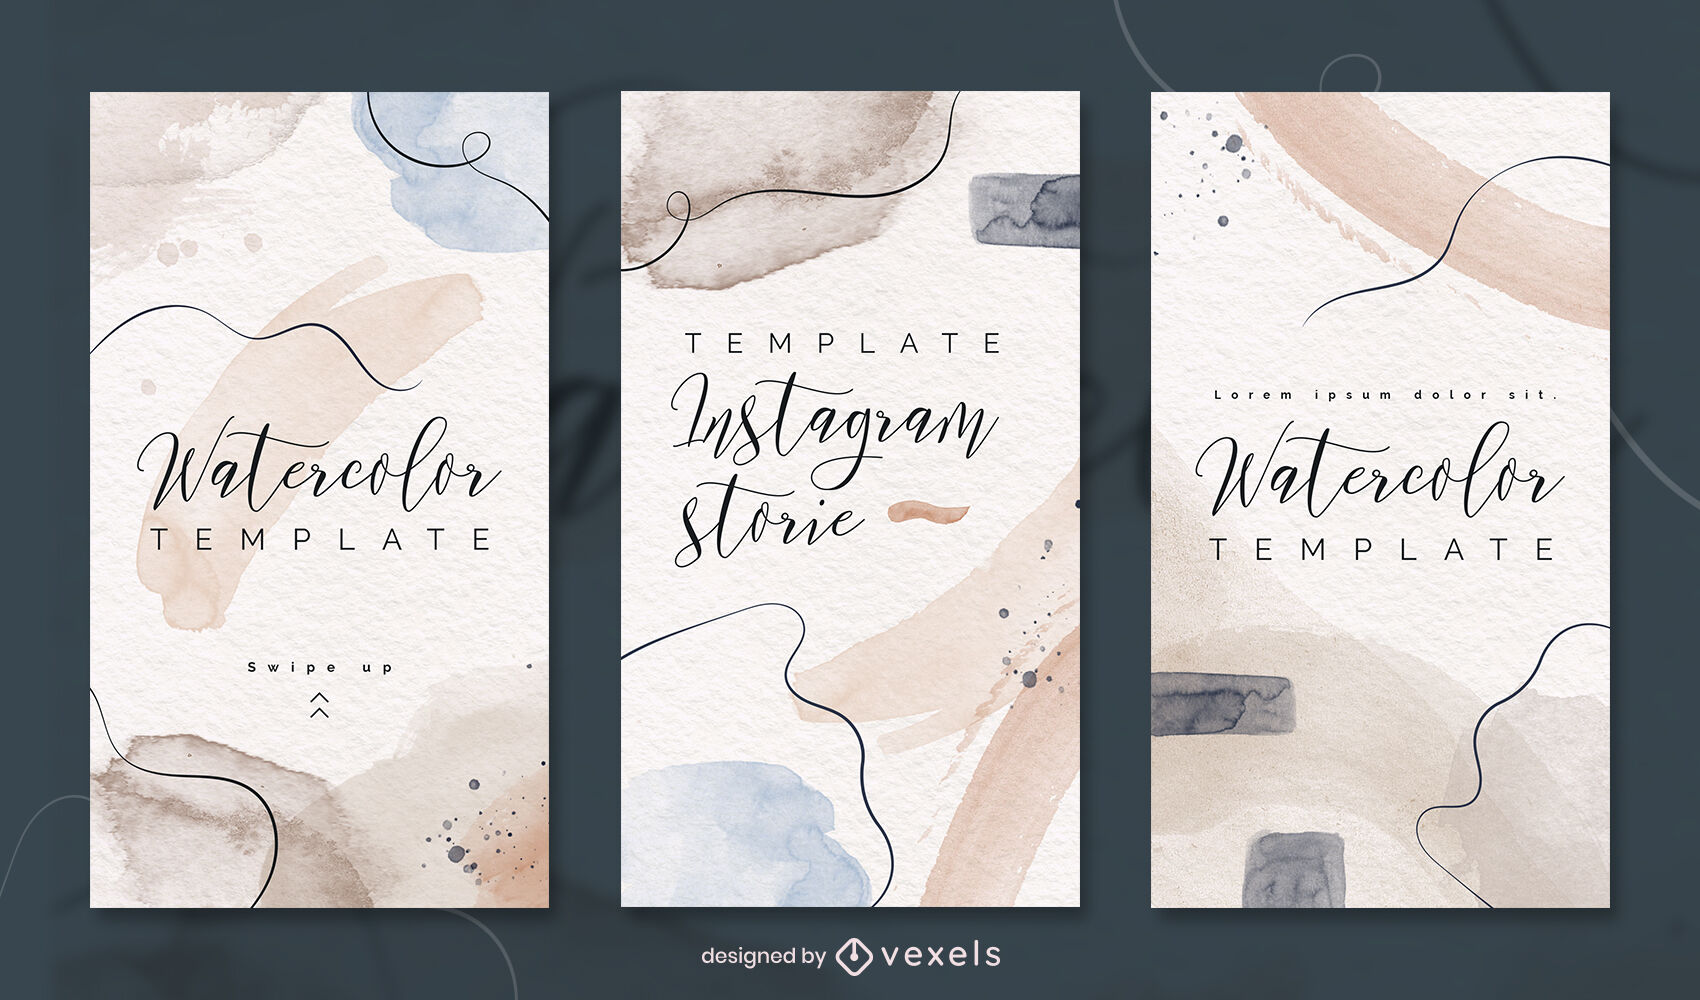 Watercolor strokes instagram story template